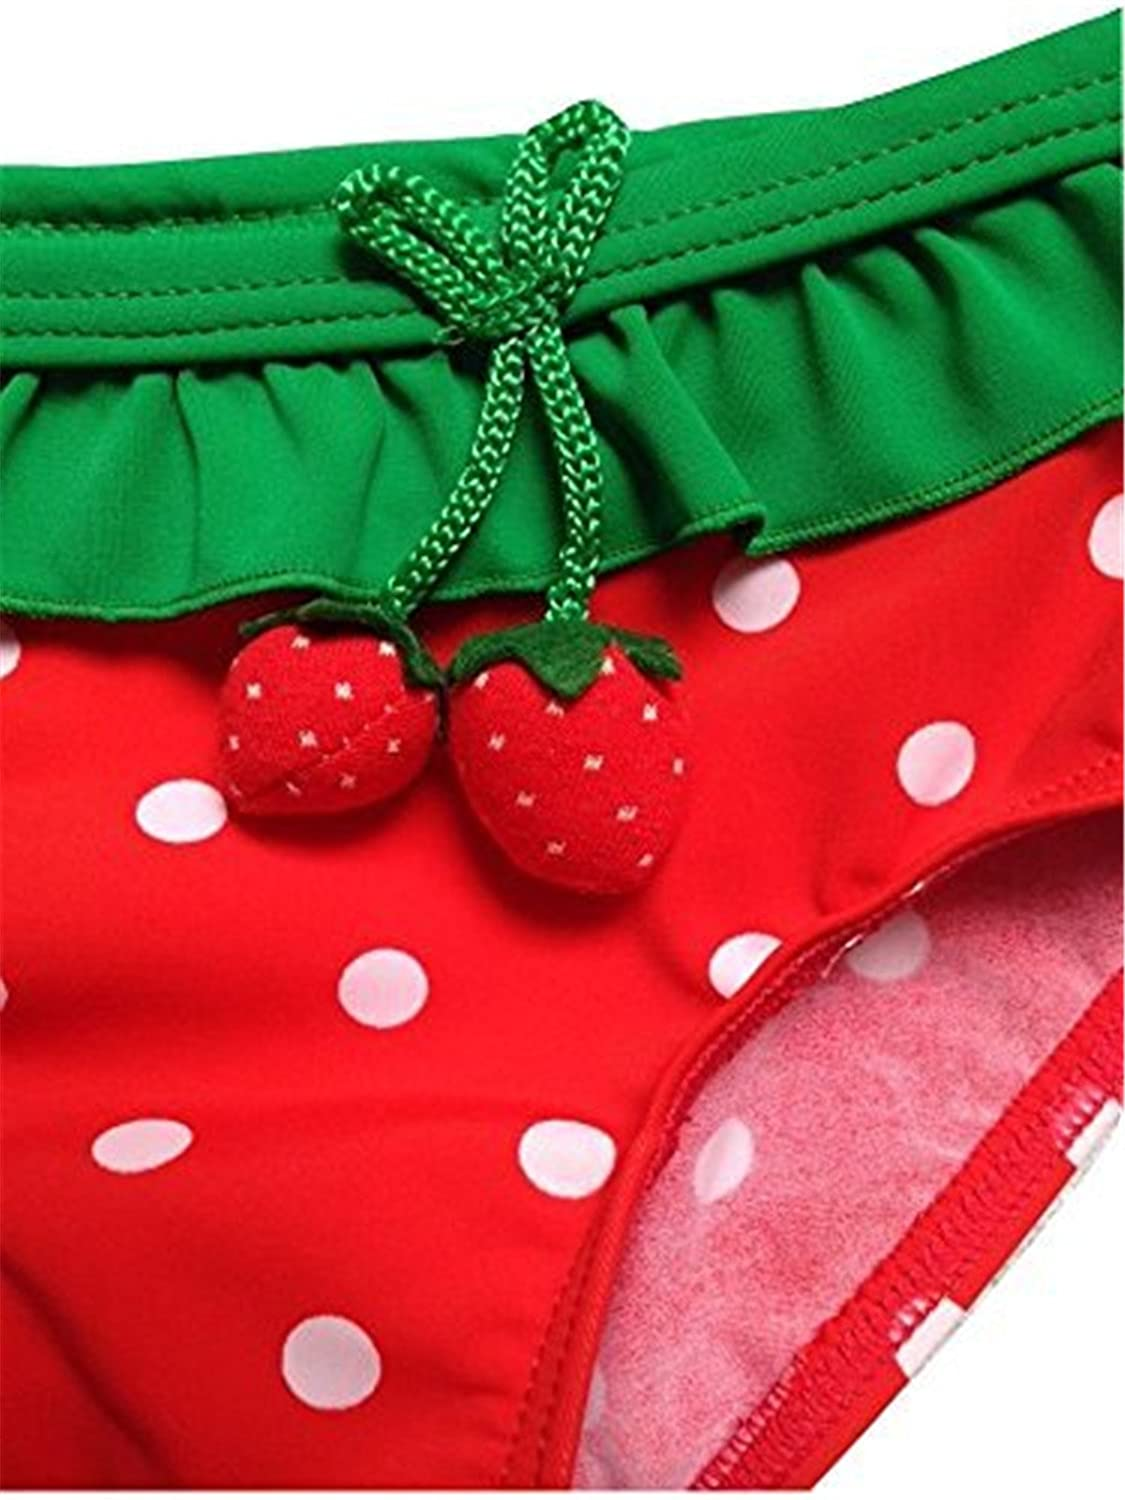 JELEUON Baby Girls Toddler Kids 3 Piece Strawberry Bikini Swimsuit Swimwear with Hat